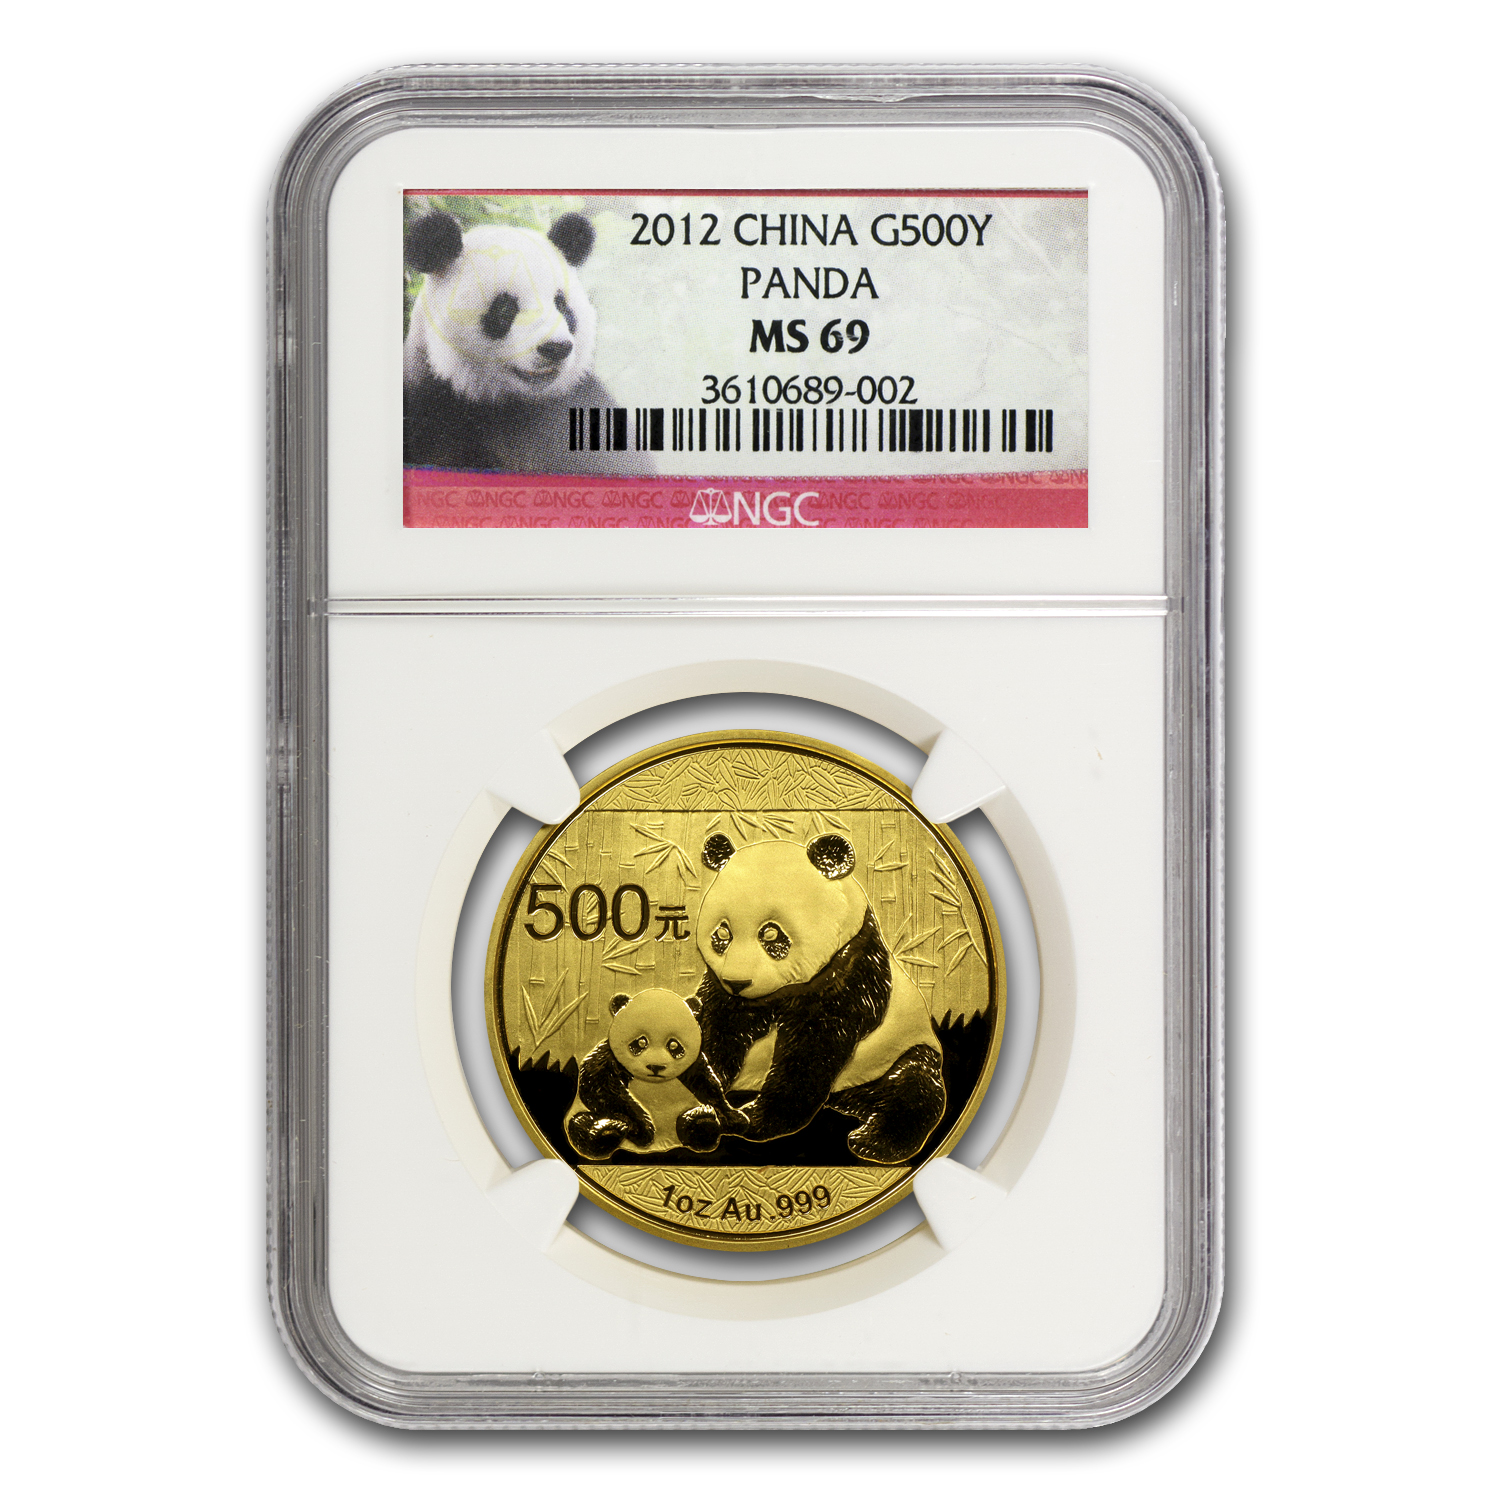 2012 China 1 oz Gold Panda MS-69 NGC